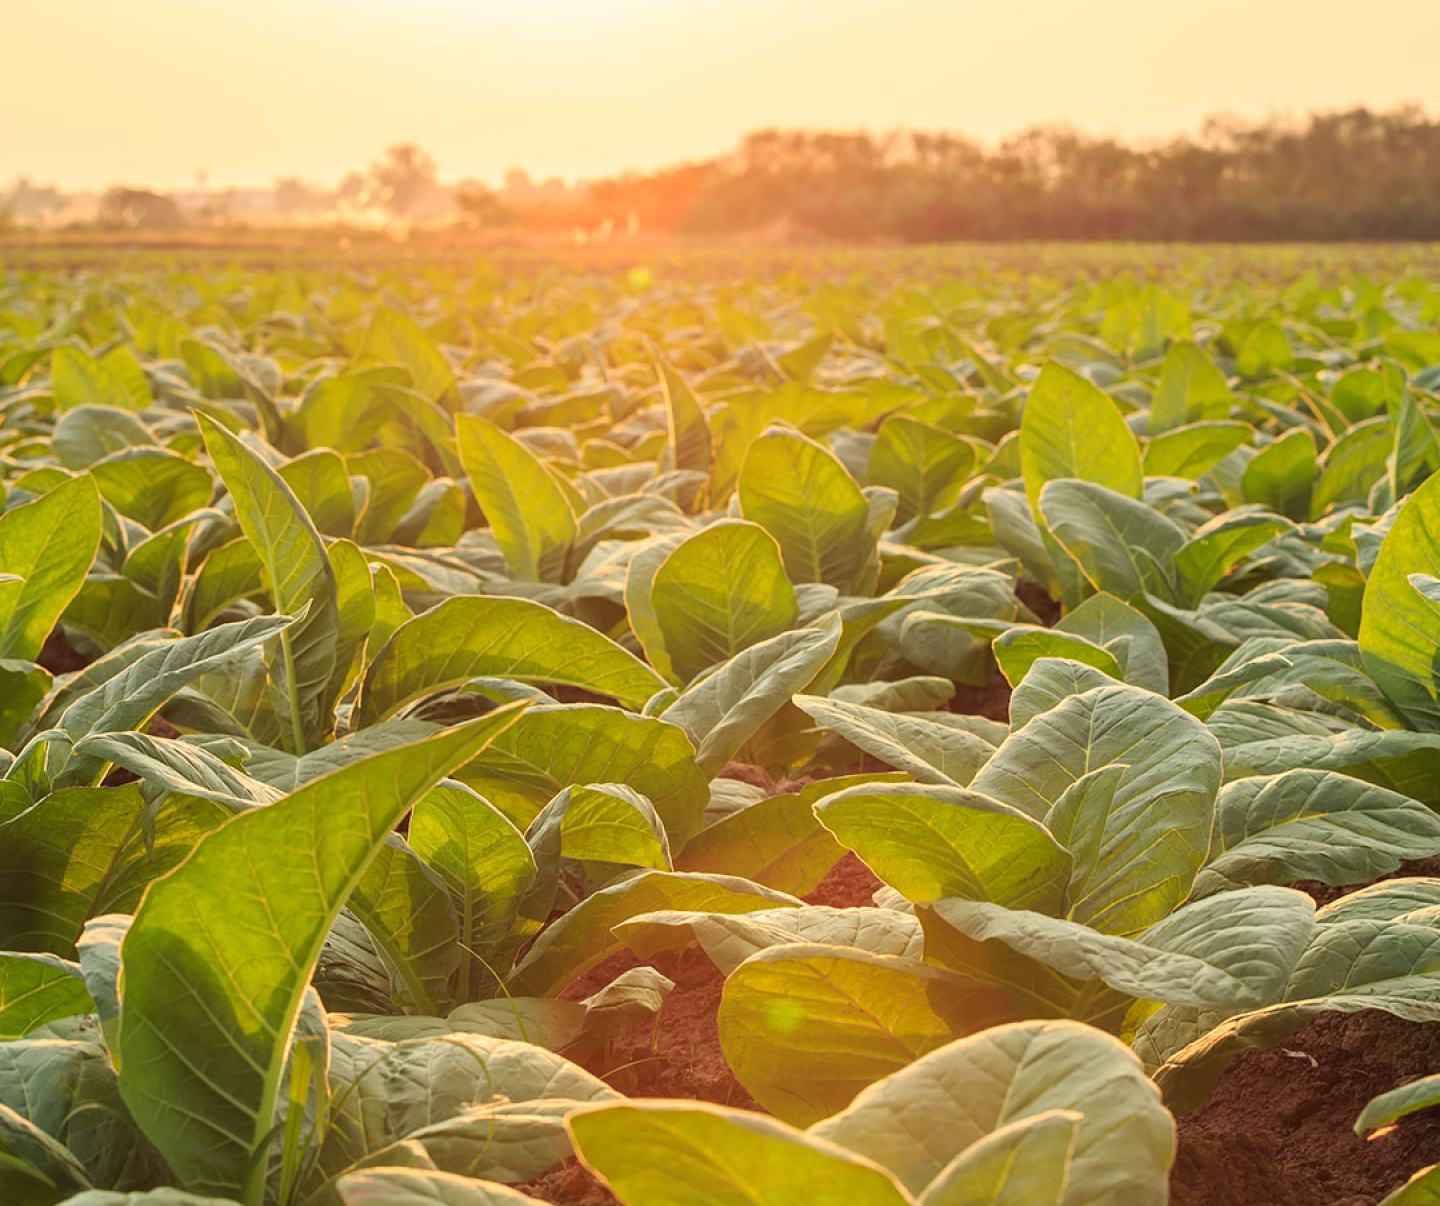 Tobacco field at sunset